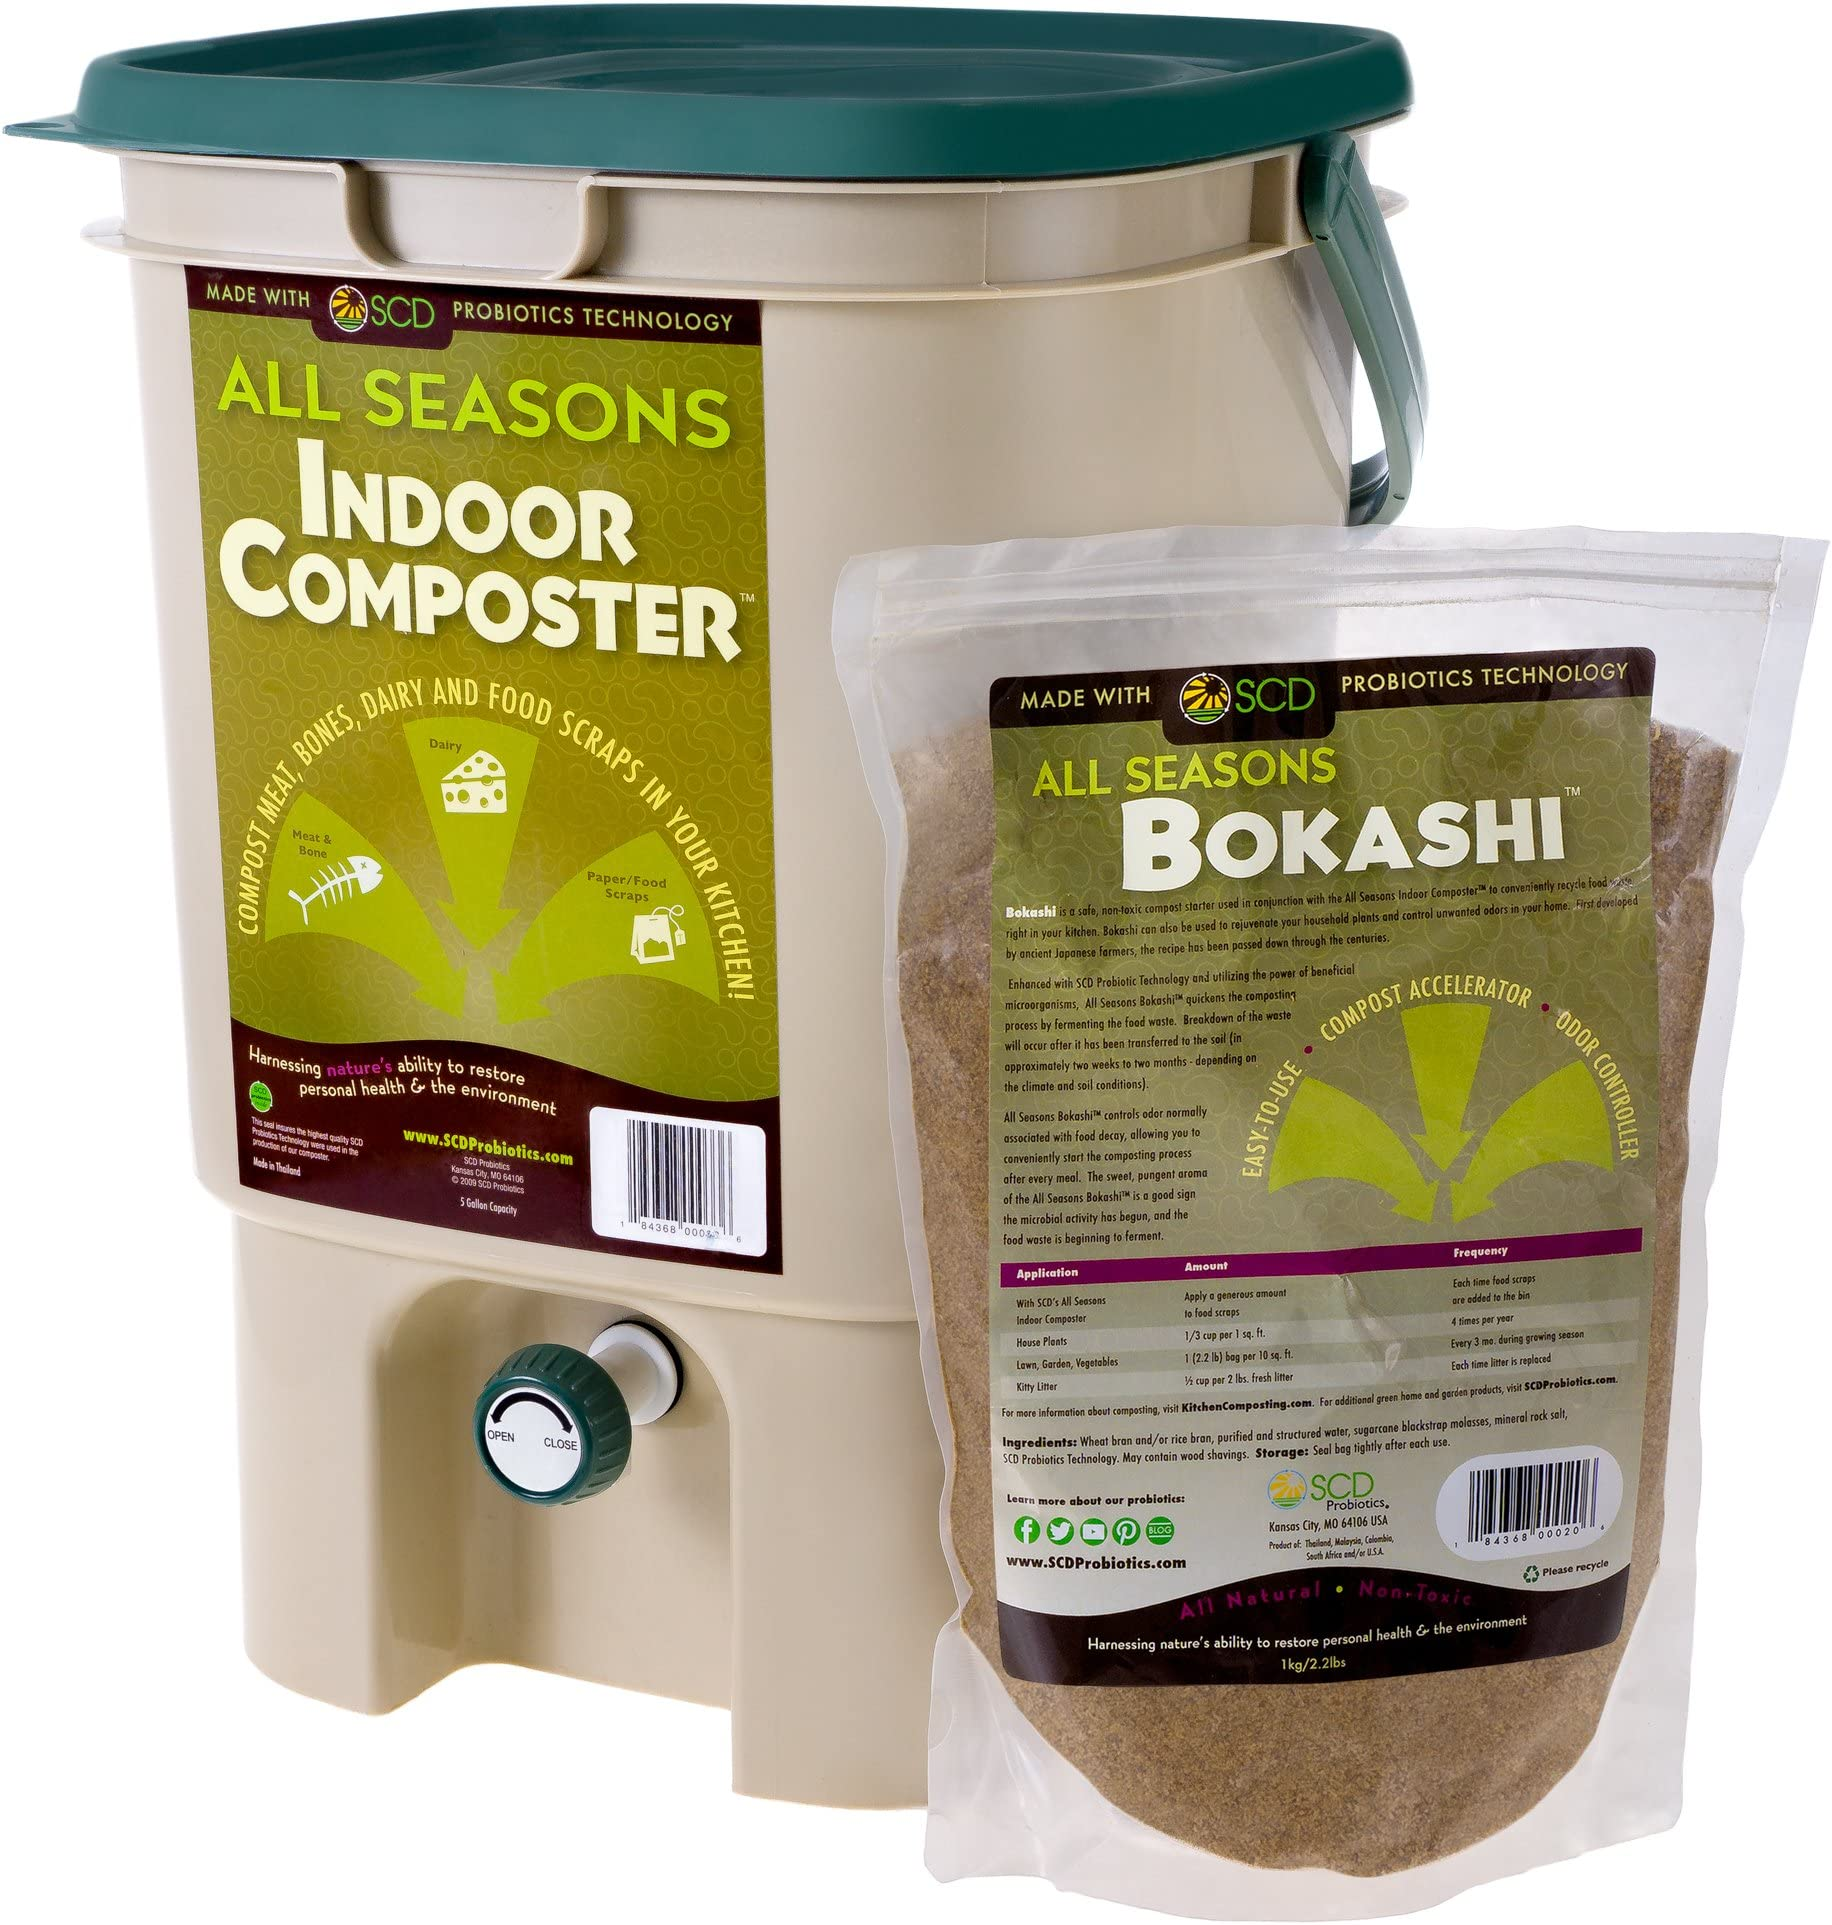 SCD Probiotics All Seasons Indoor Composter, Countertop Kitchen Compost Bin with Bokashi - Easily Compost in Your Kitchen After Every Meal, Low Odor - 5 gal